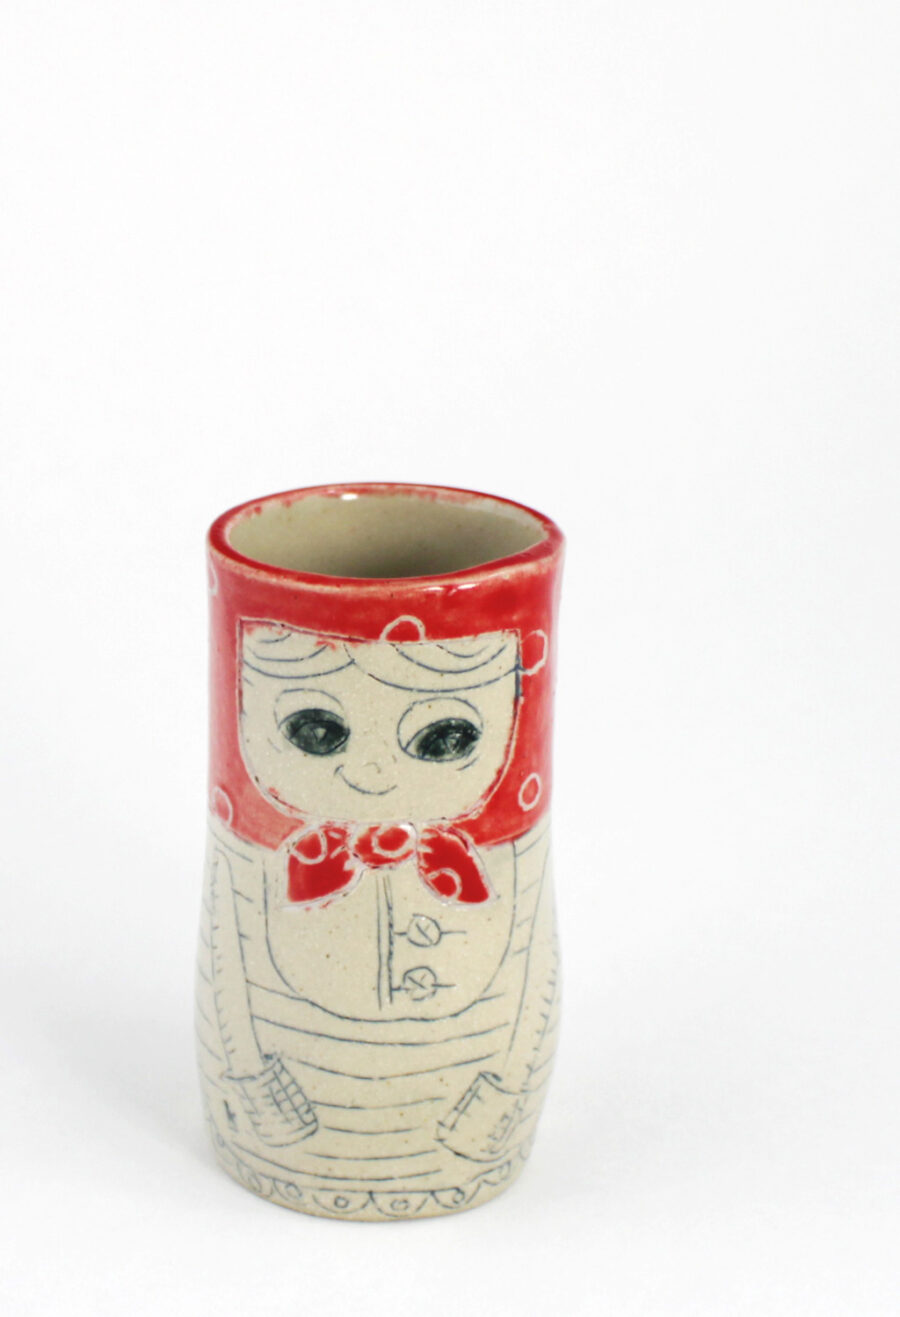 kleine-vase-matroschka-rotes-kopftuch-punkte-my-deer-illustrated-ceramics